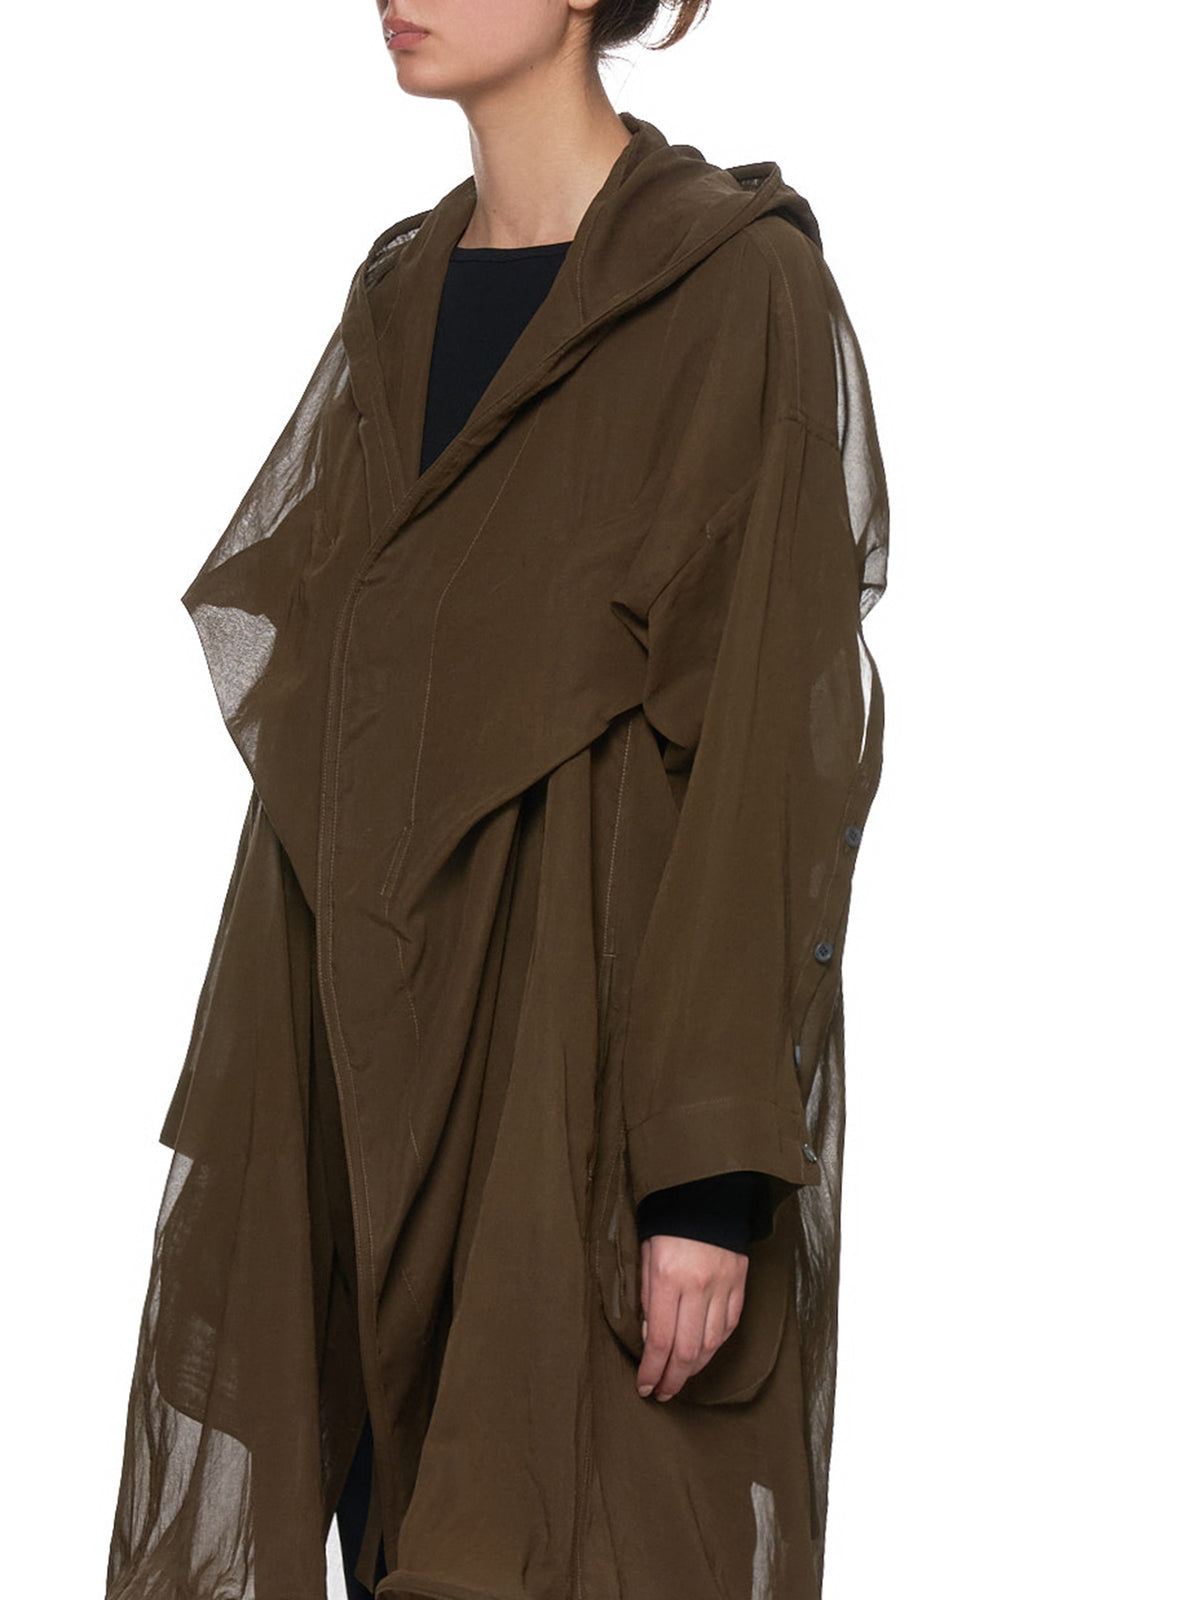 Transparent Duster Jacket (NH-C12-007-KHAKI)